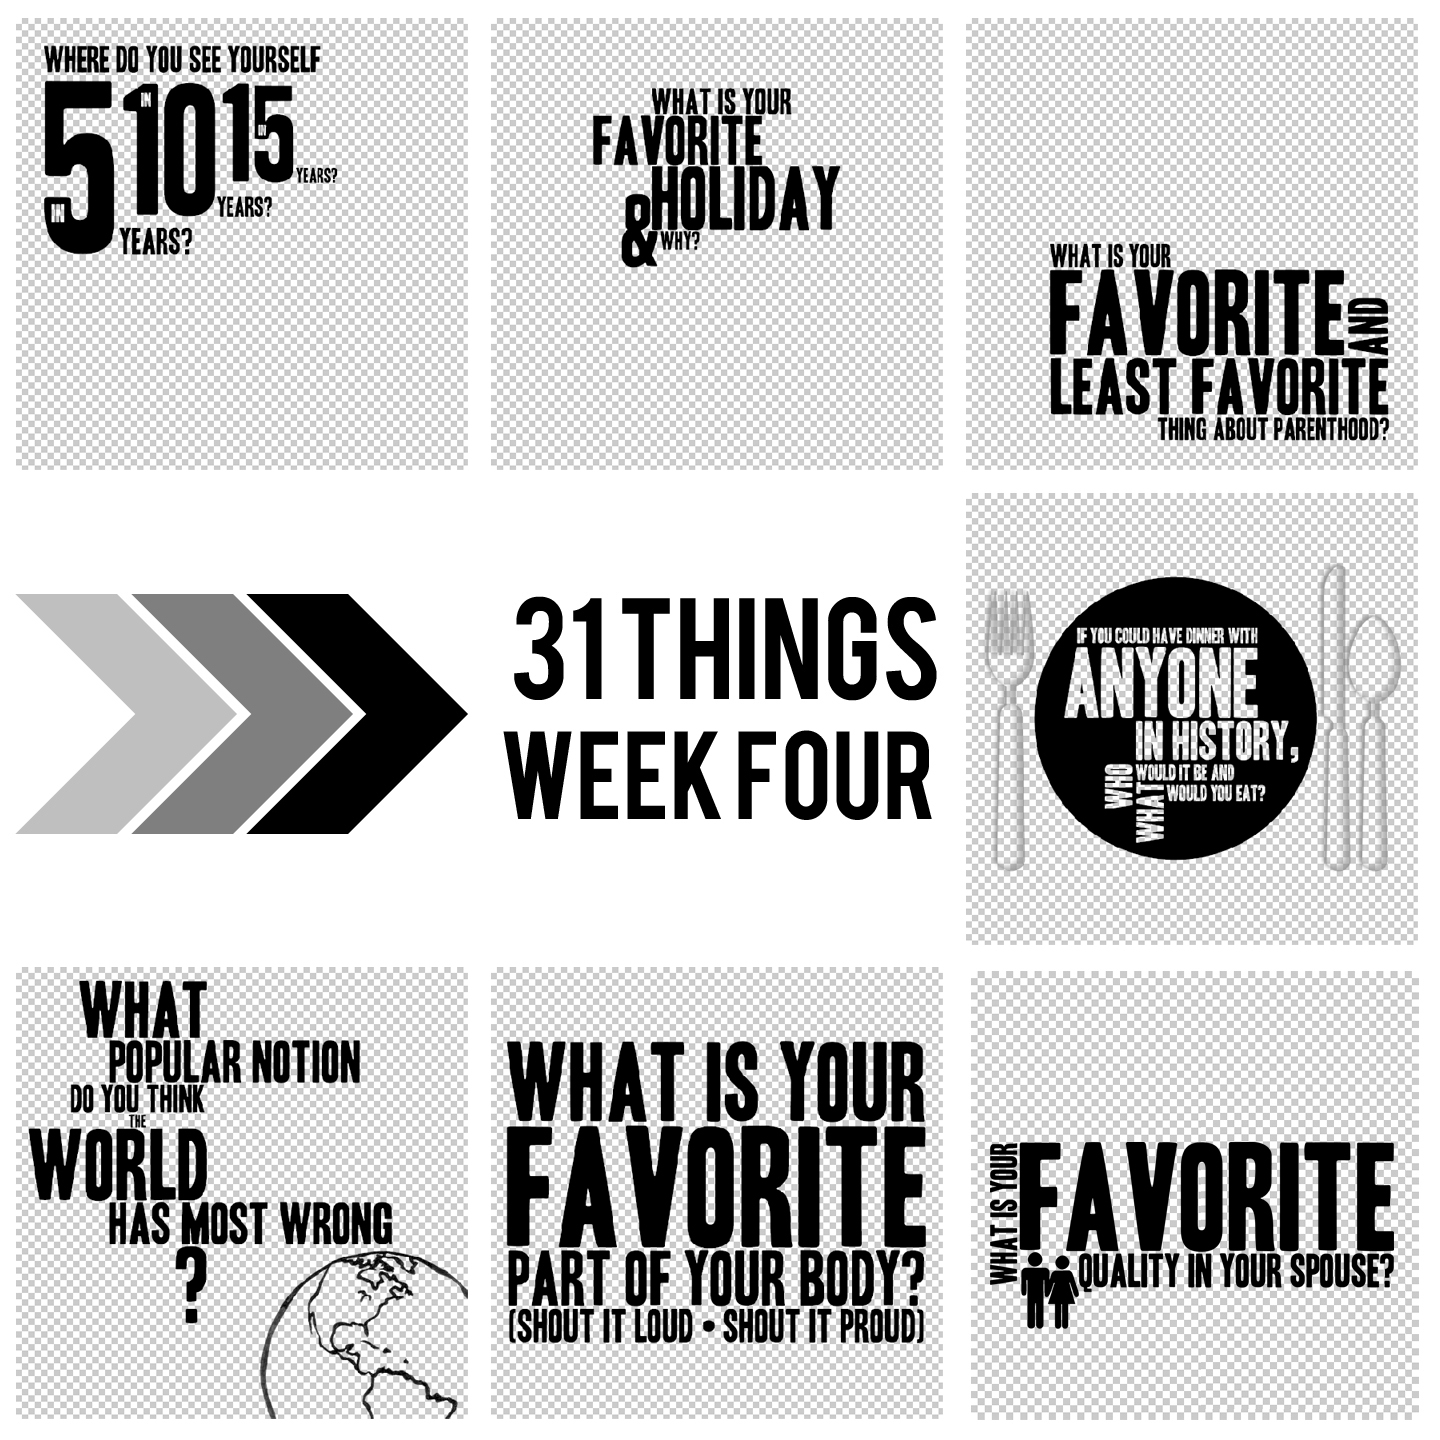 crashnotes_31things_week 4